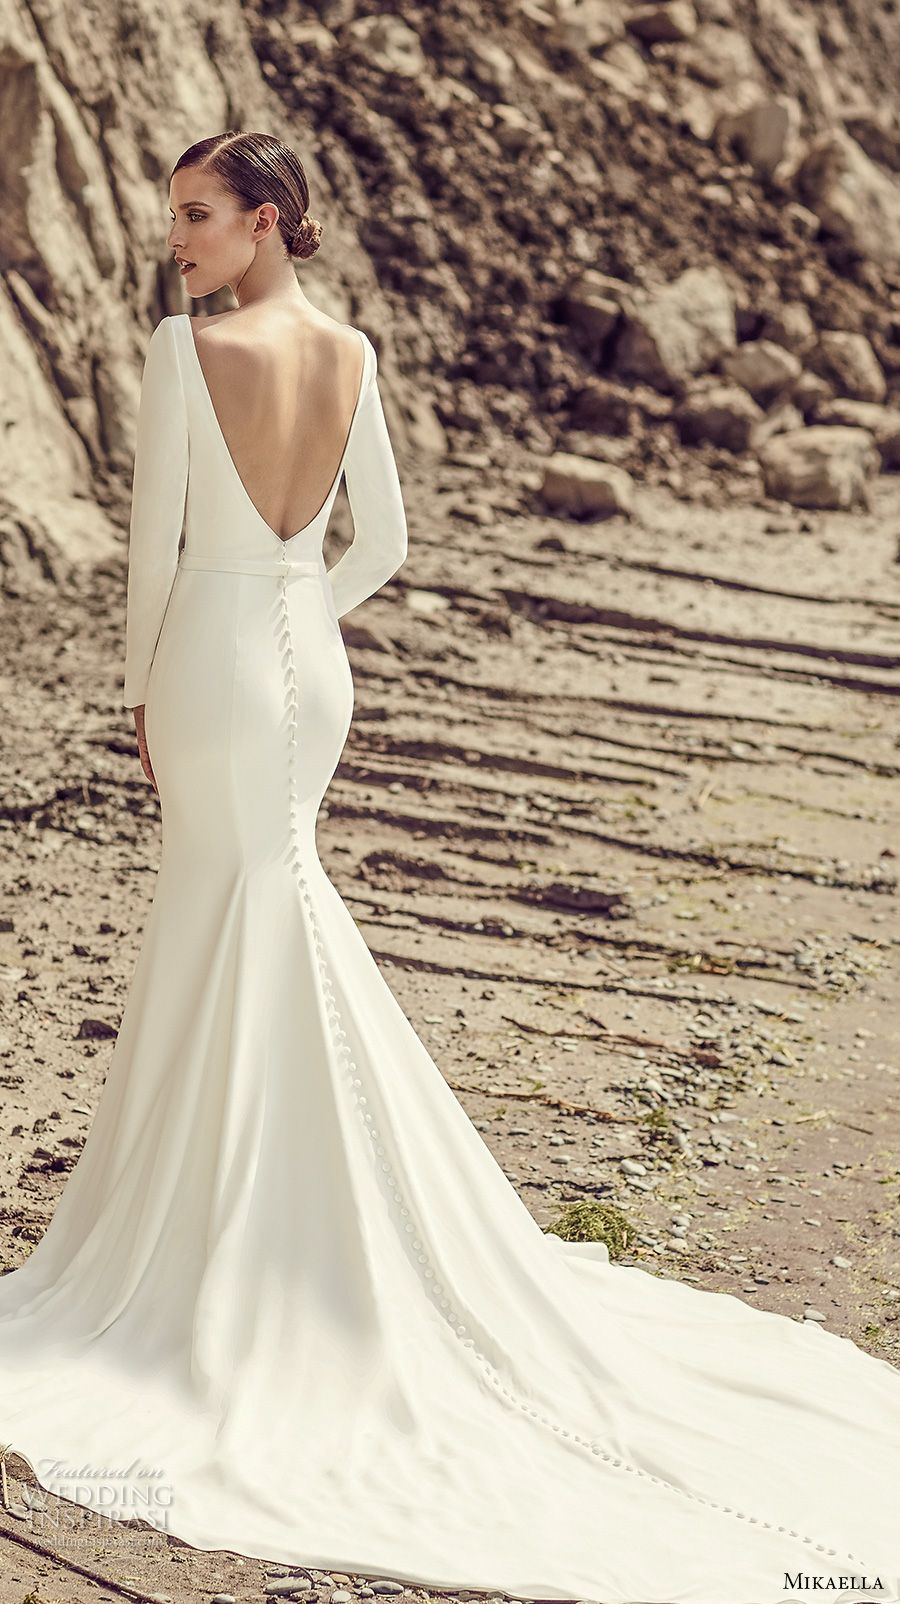 Mikaella bridal spring wedding dresses just another dream